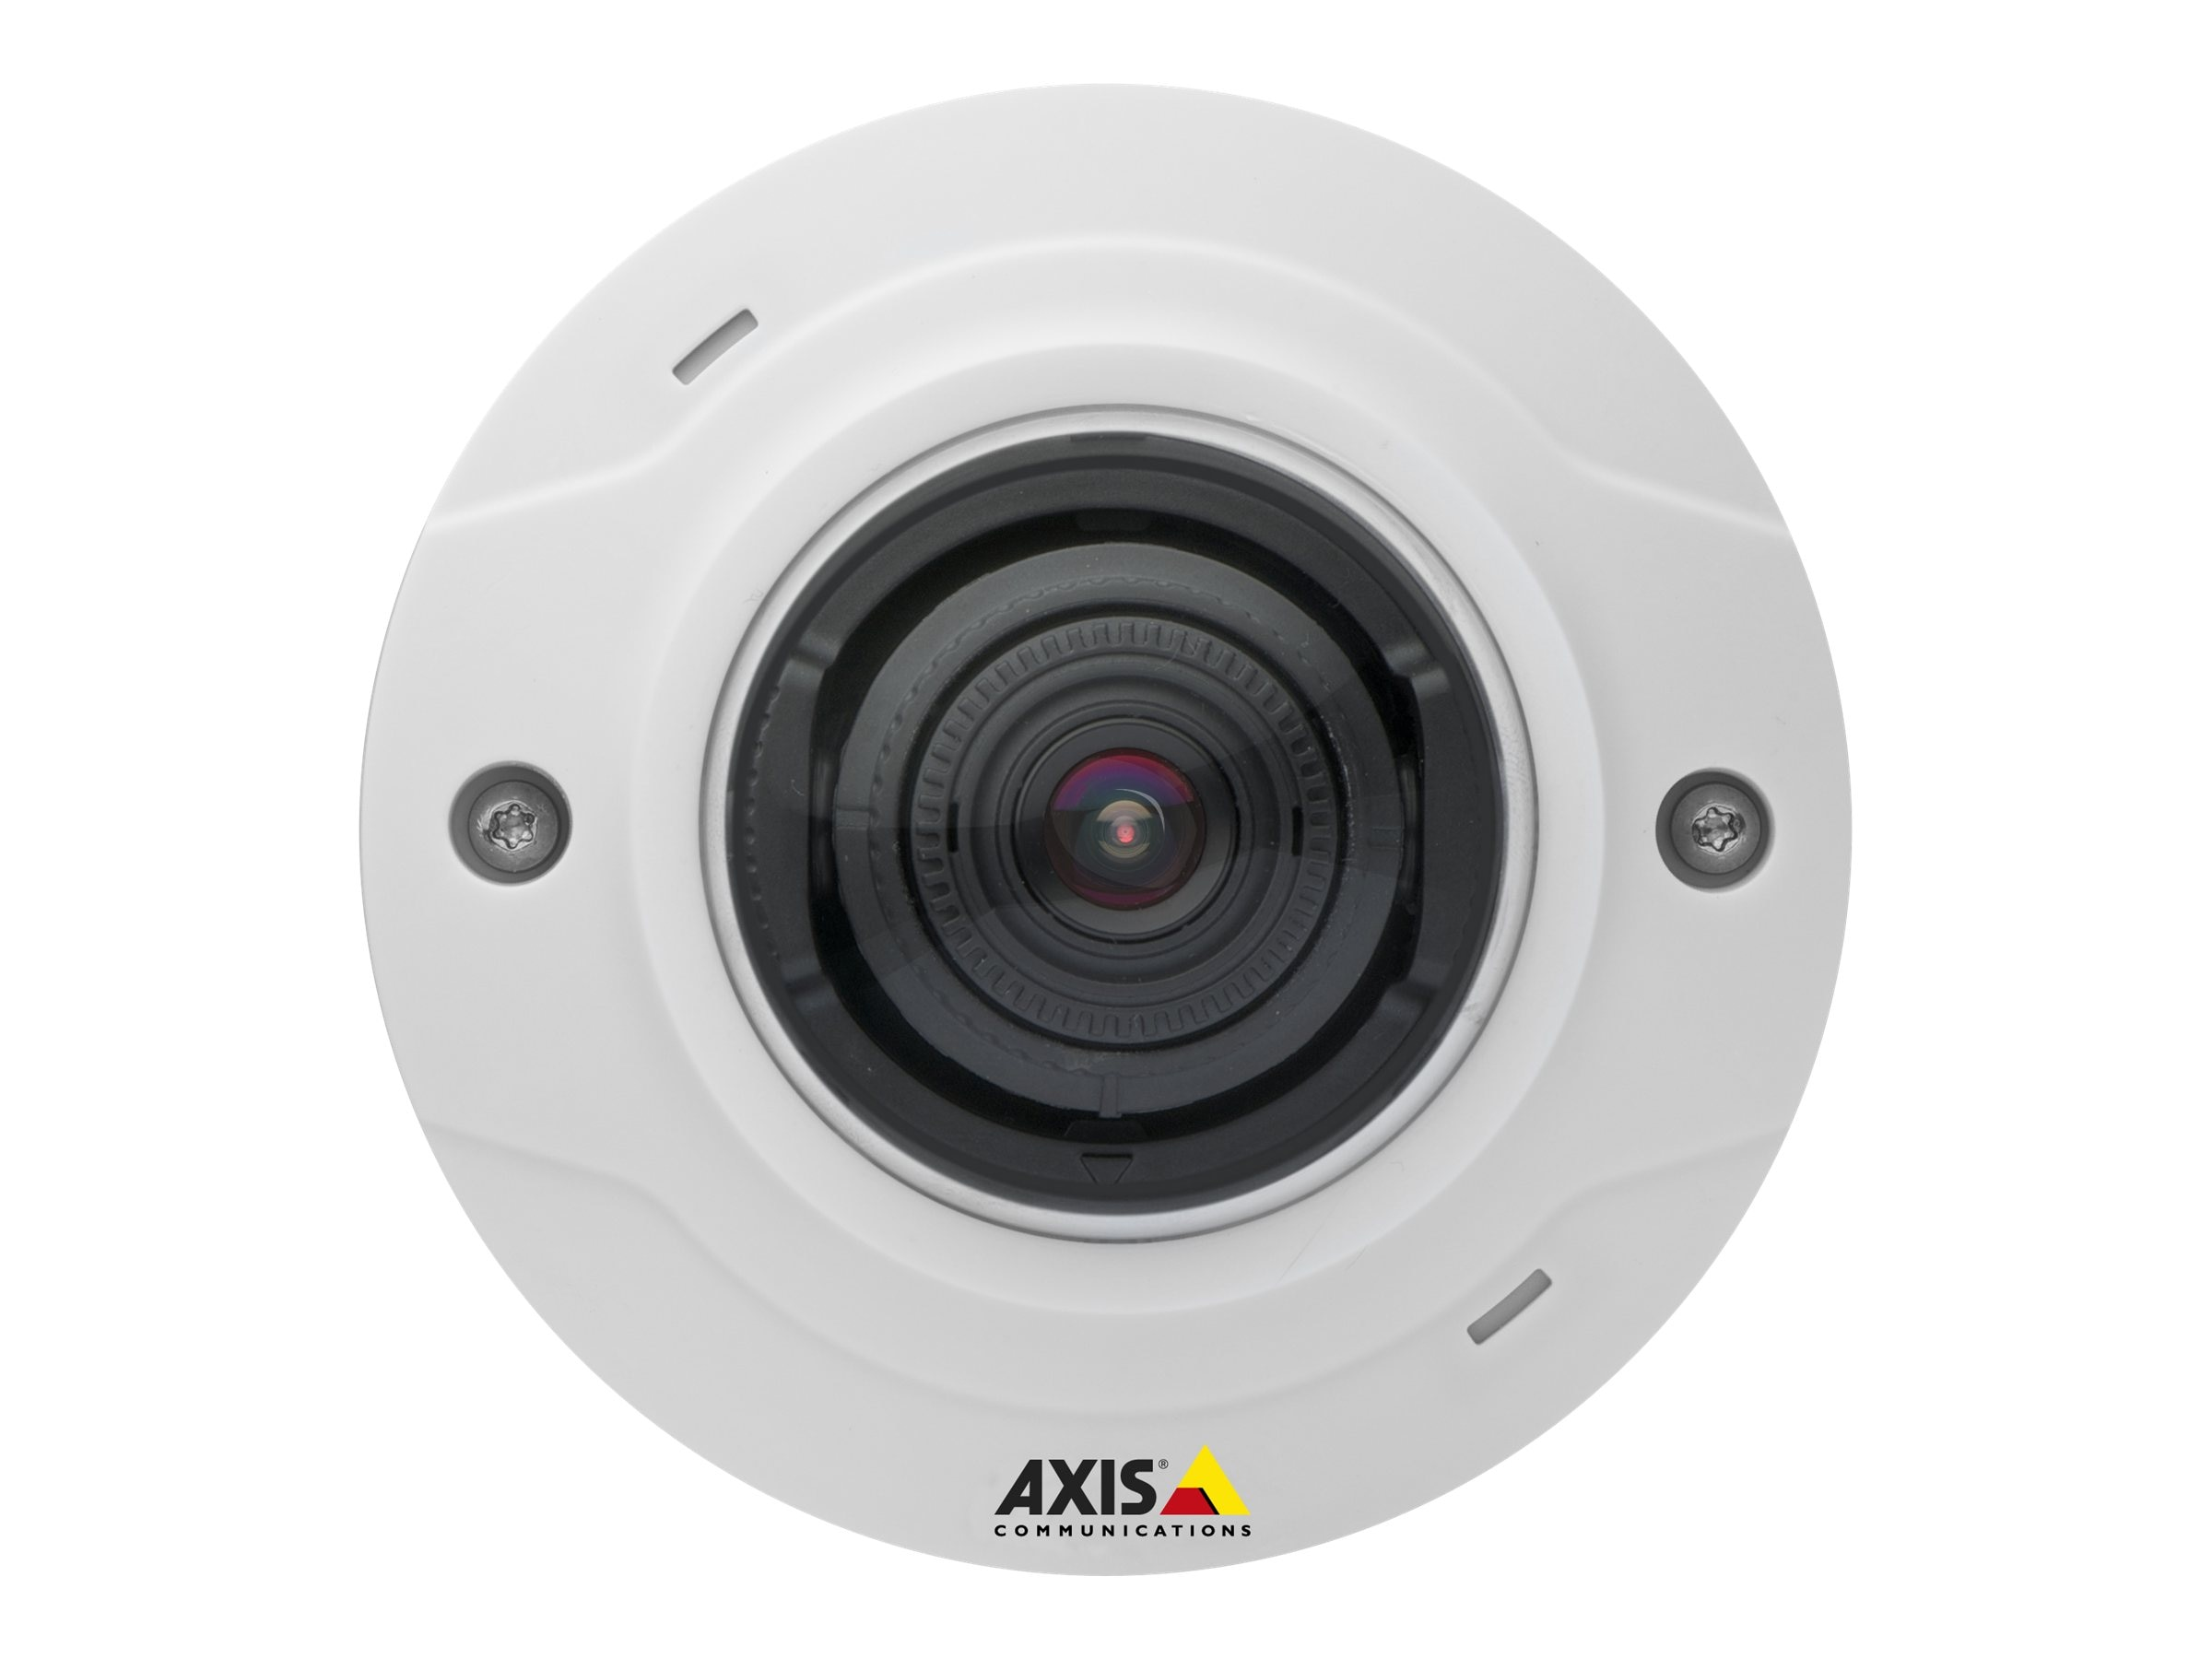 Axis M3005-V Network Camera, Compact Indoor Mini Dome, 0517-001, 14634653, Cameras - Security